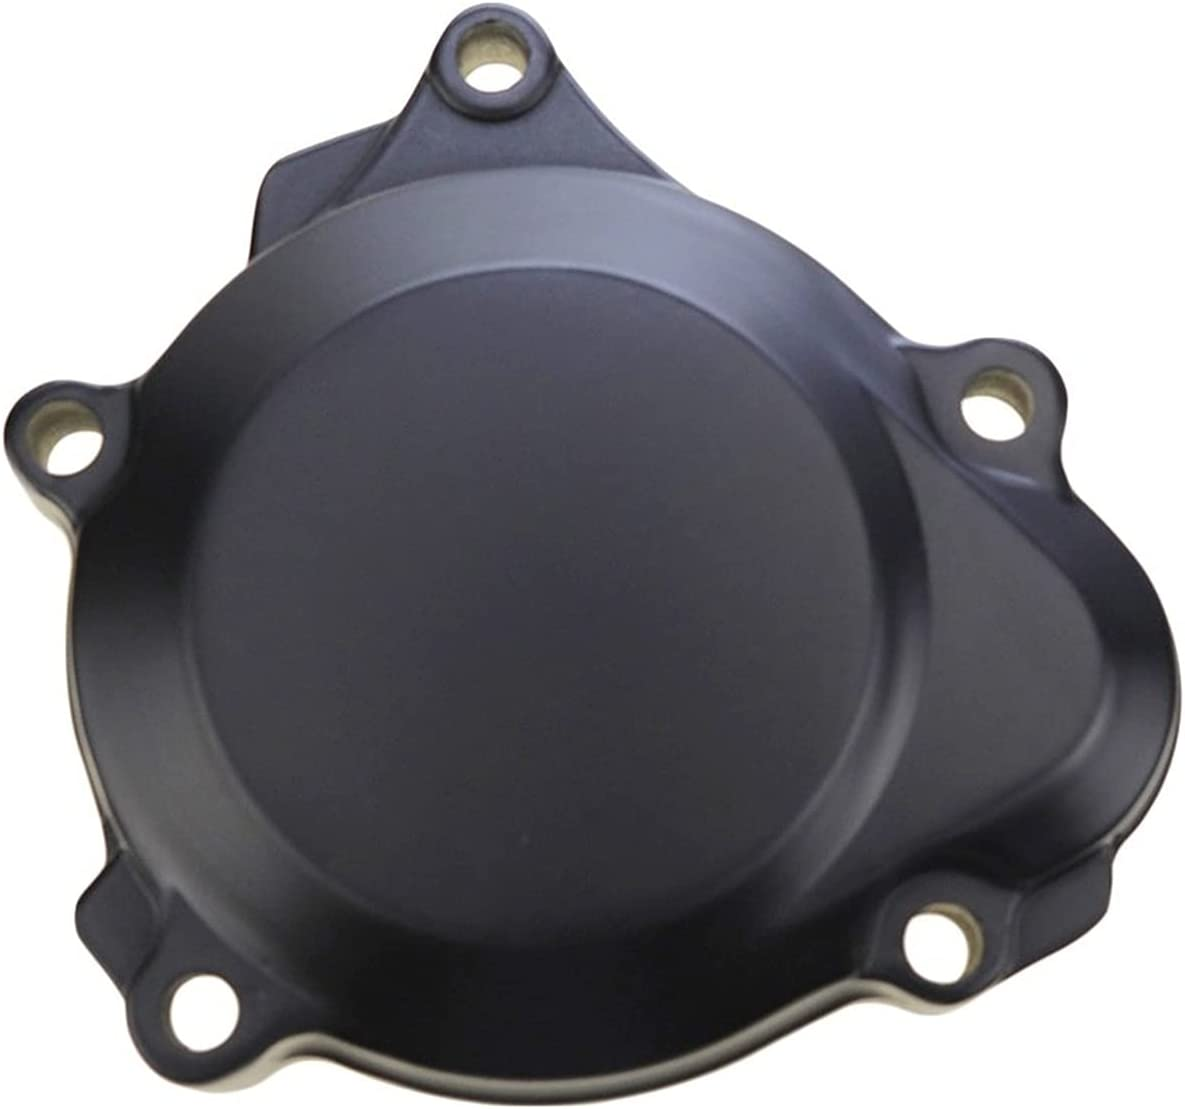 Demeanor Motorcycle Engine Covers Motor Free Shipping famous Cheap Bargain Gift Side Cover Right